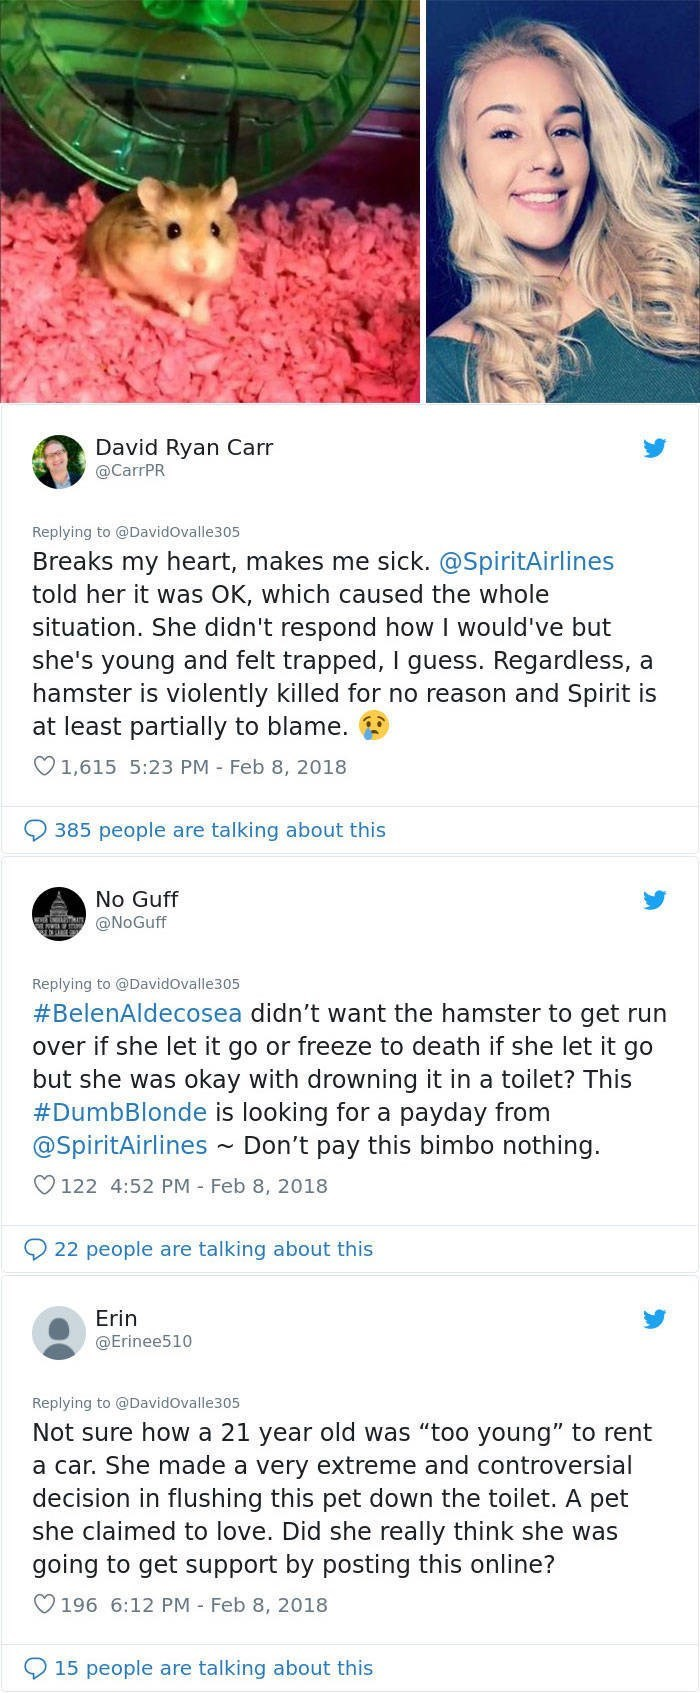 Text - David Ryan Carr @CarrPR Replying to @Davidovalle305 Breaks my heart, makes me sick. @SpiritAirlines told her it was OK, which caused the whole situation. She didn't respond how I would've but she's young and felt trapped, I guess. Regardless, a hamster is violently killed for no reason and Spirit is at least partially to blame. 1,615 5:23 PM Feb 8, 2018 385 people are talking about this No Guff @NoGuff Replying to @Davidovalle305 #BelenAldecosea didn't want the hamster to get run over if